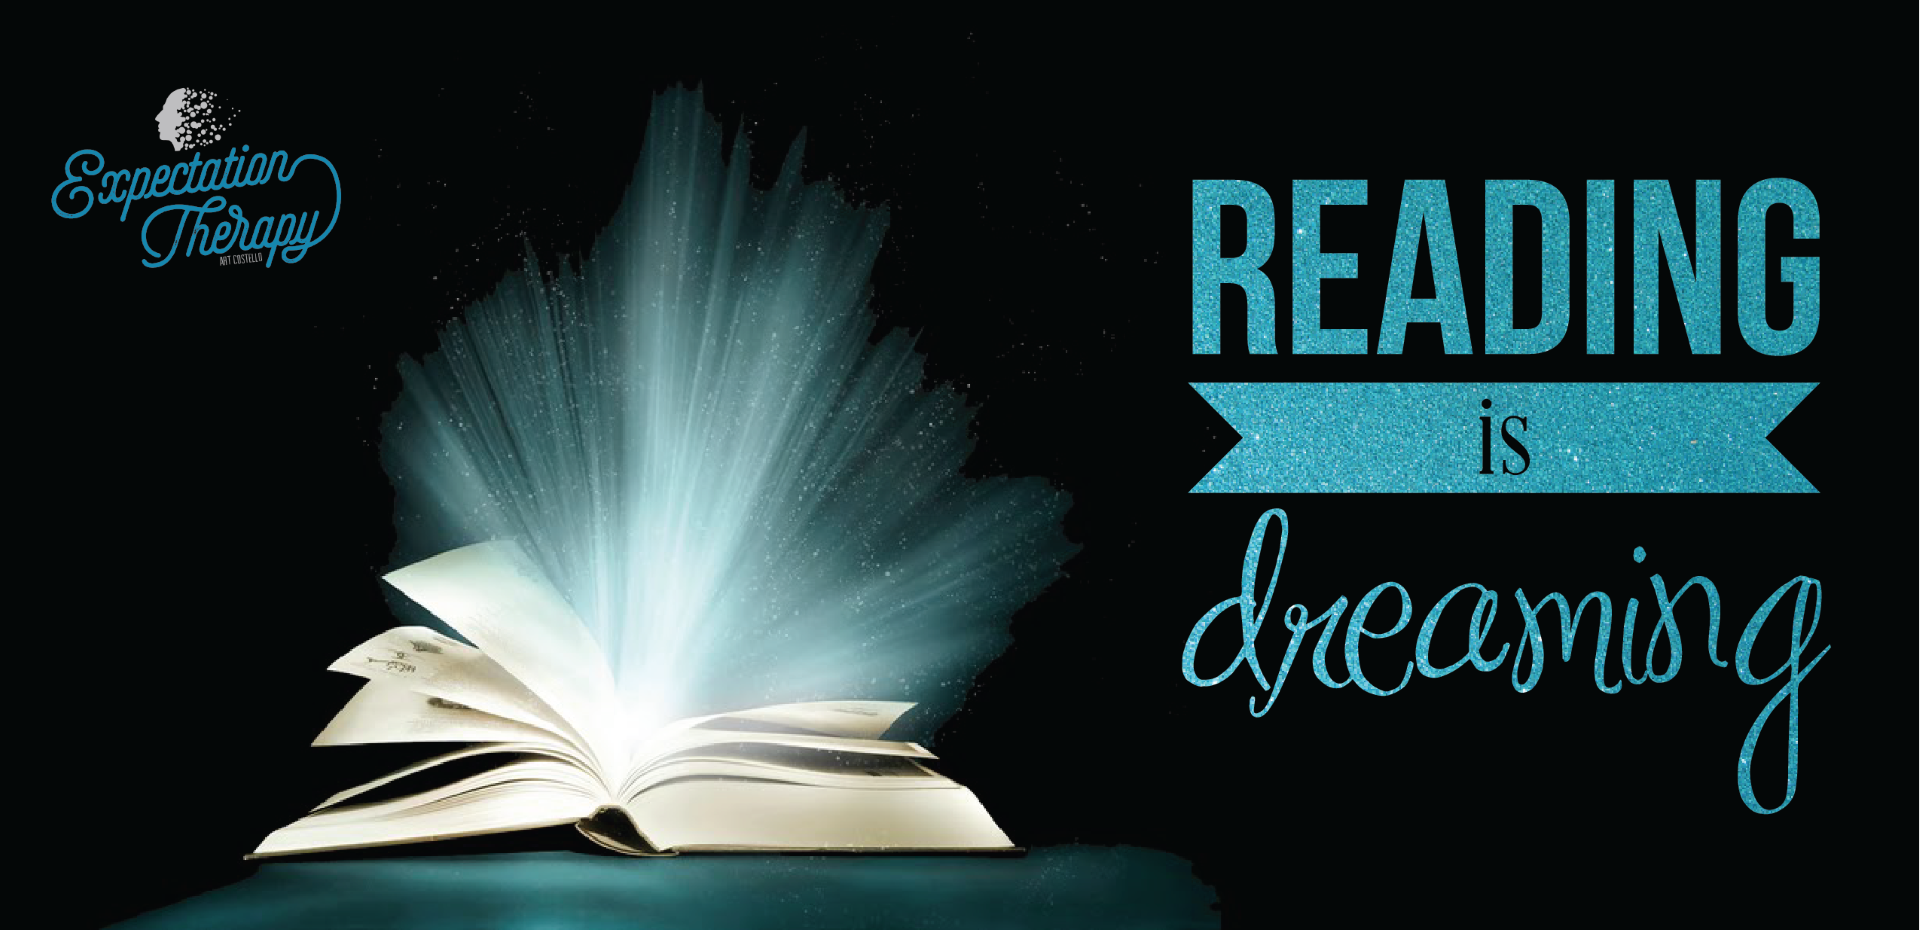 Reading is dreaming! What's your favorite book to #read? #WednesdayWisdom